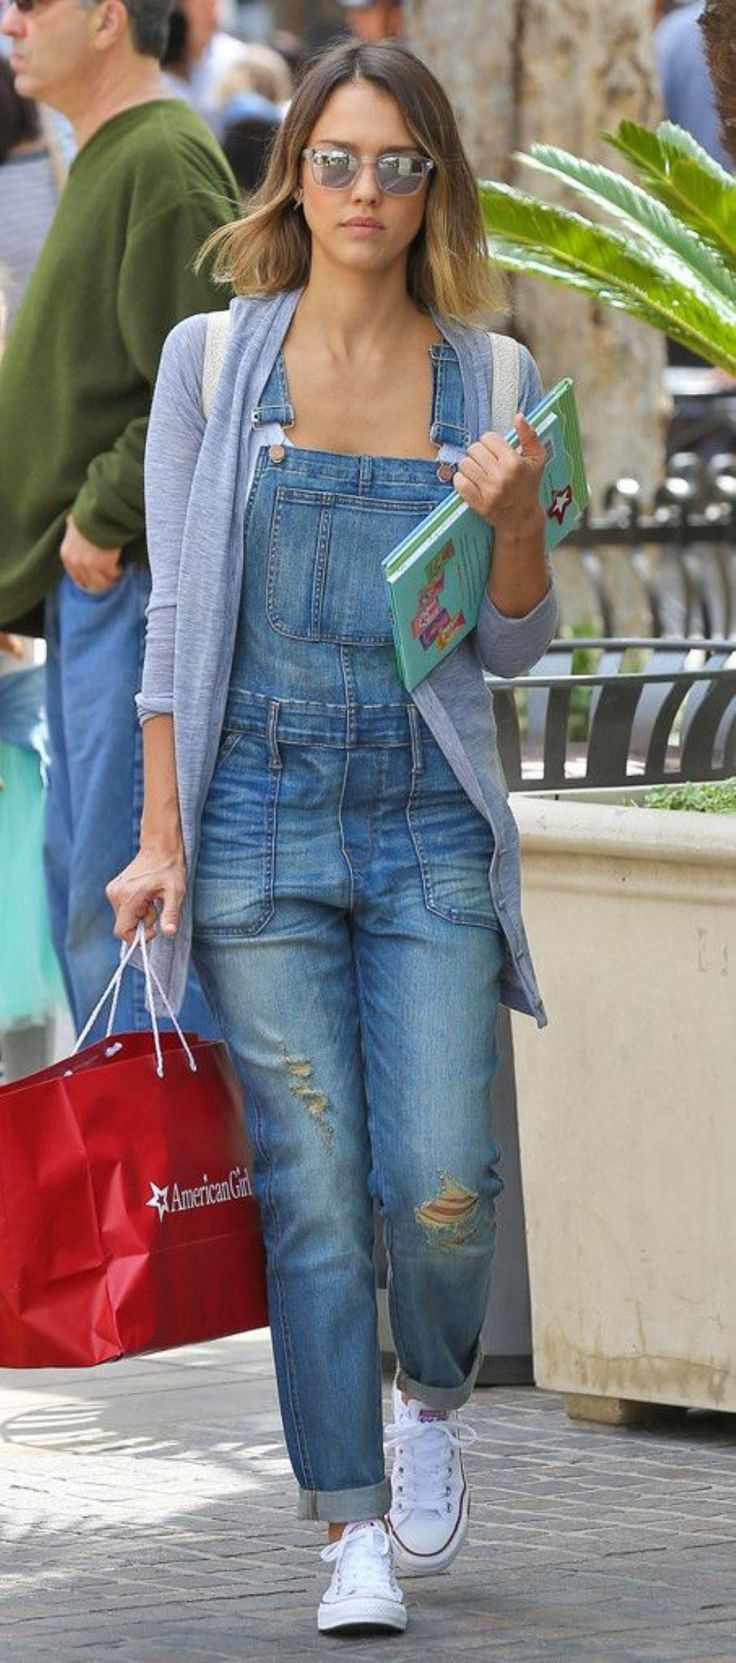 Breathtaking 77 Trendy Overalls Outfits for Summer and Spring from https://www.fashionetter.com/2017/04/17/77-trendy-overalls-outfits-summer-spring/